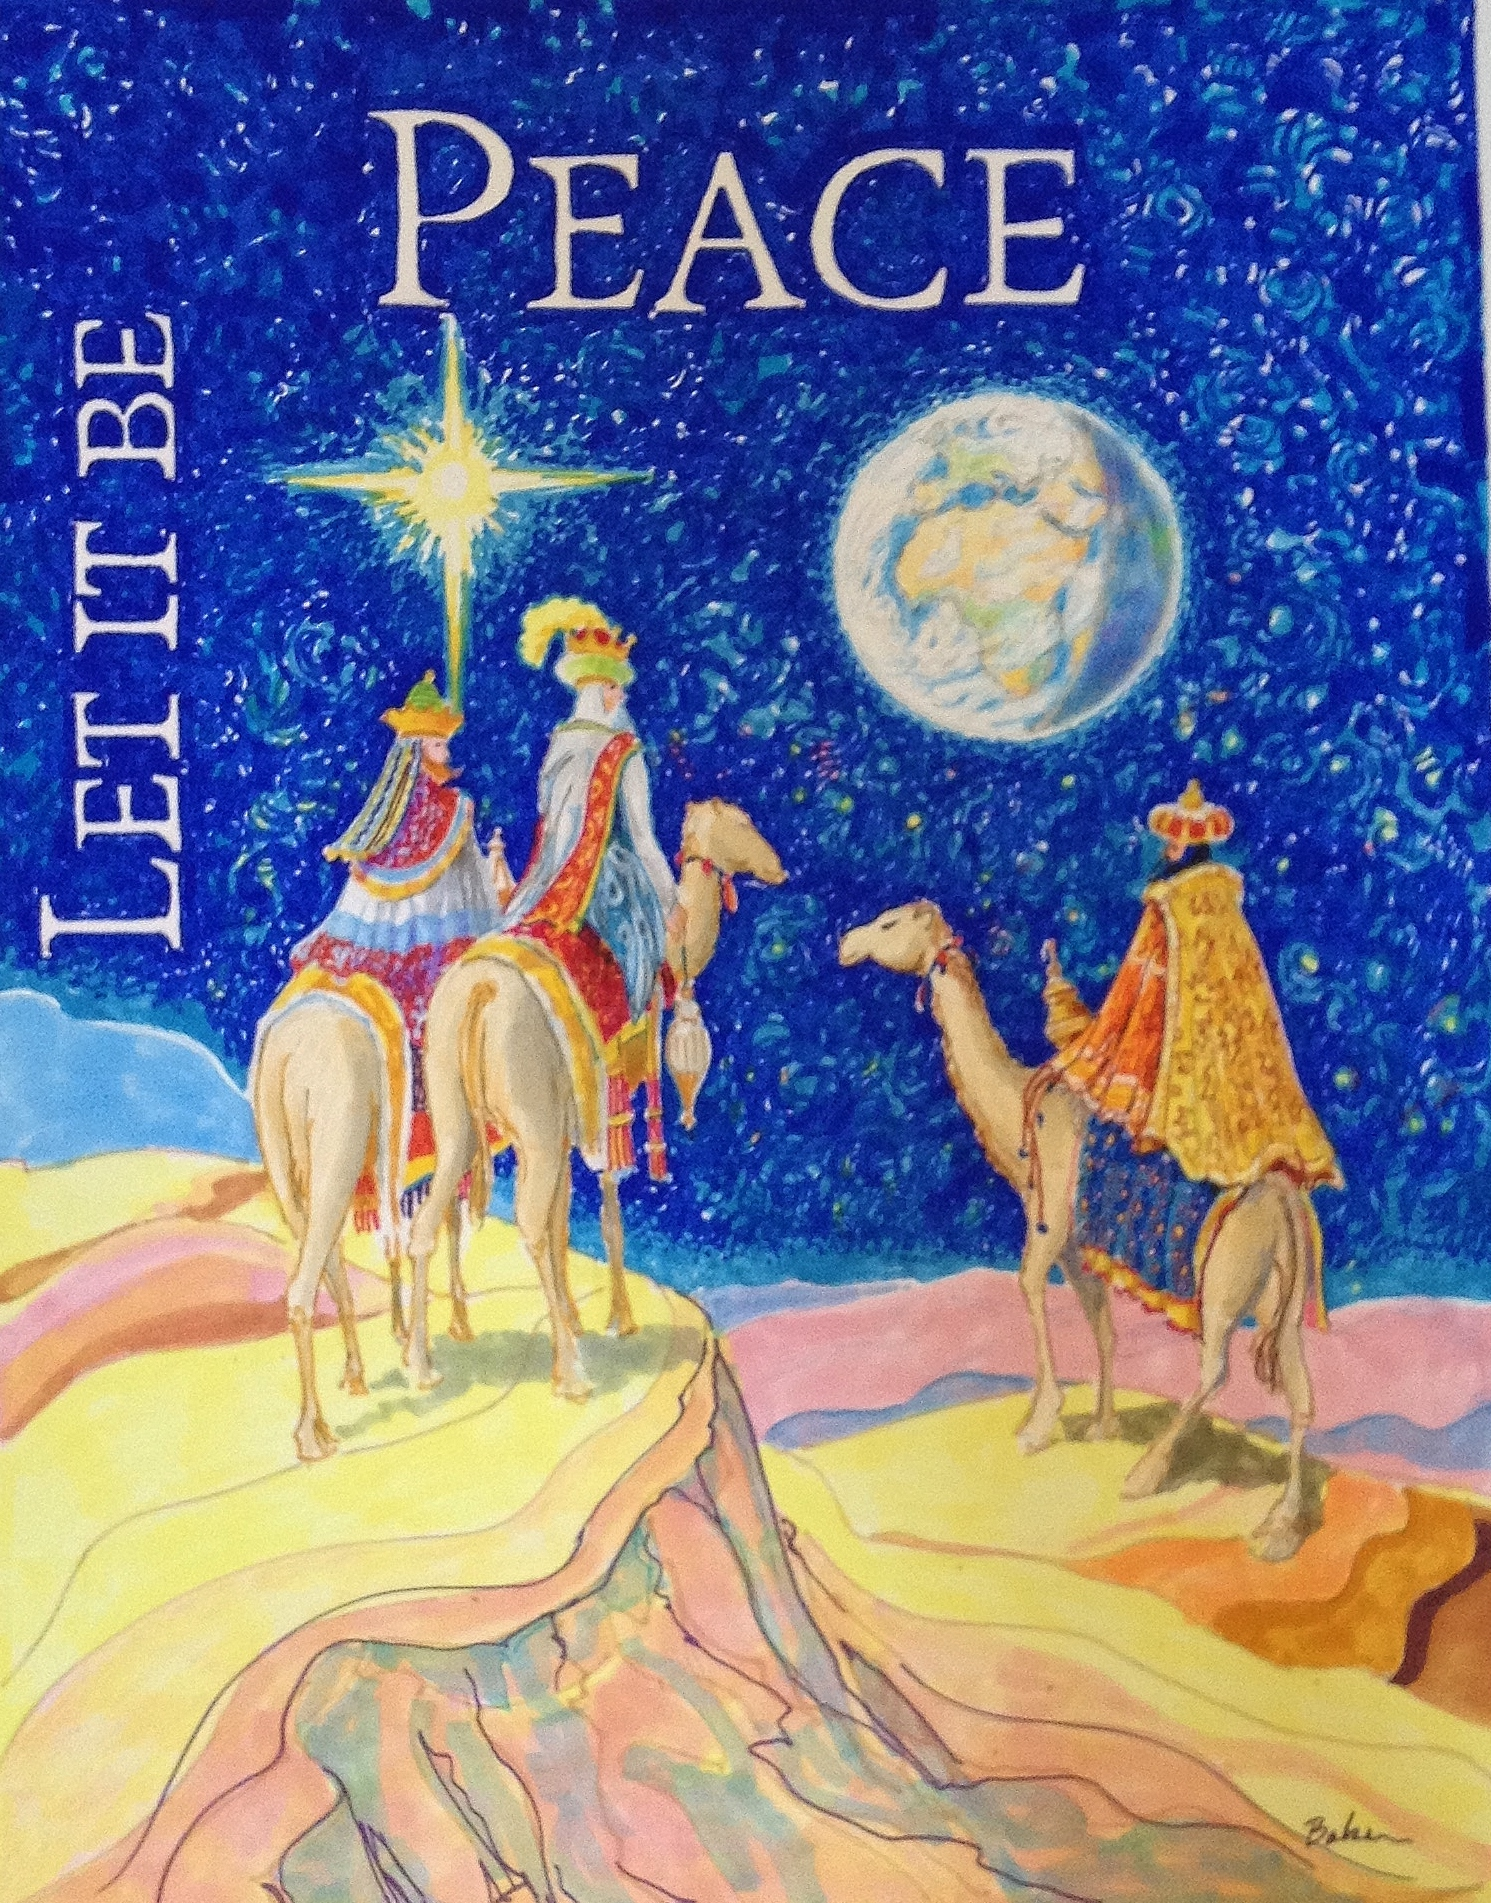 Let it be Peace